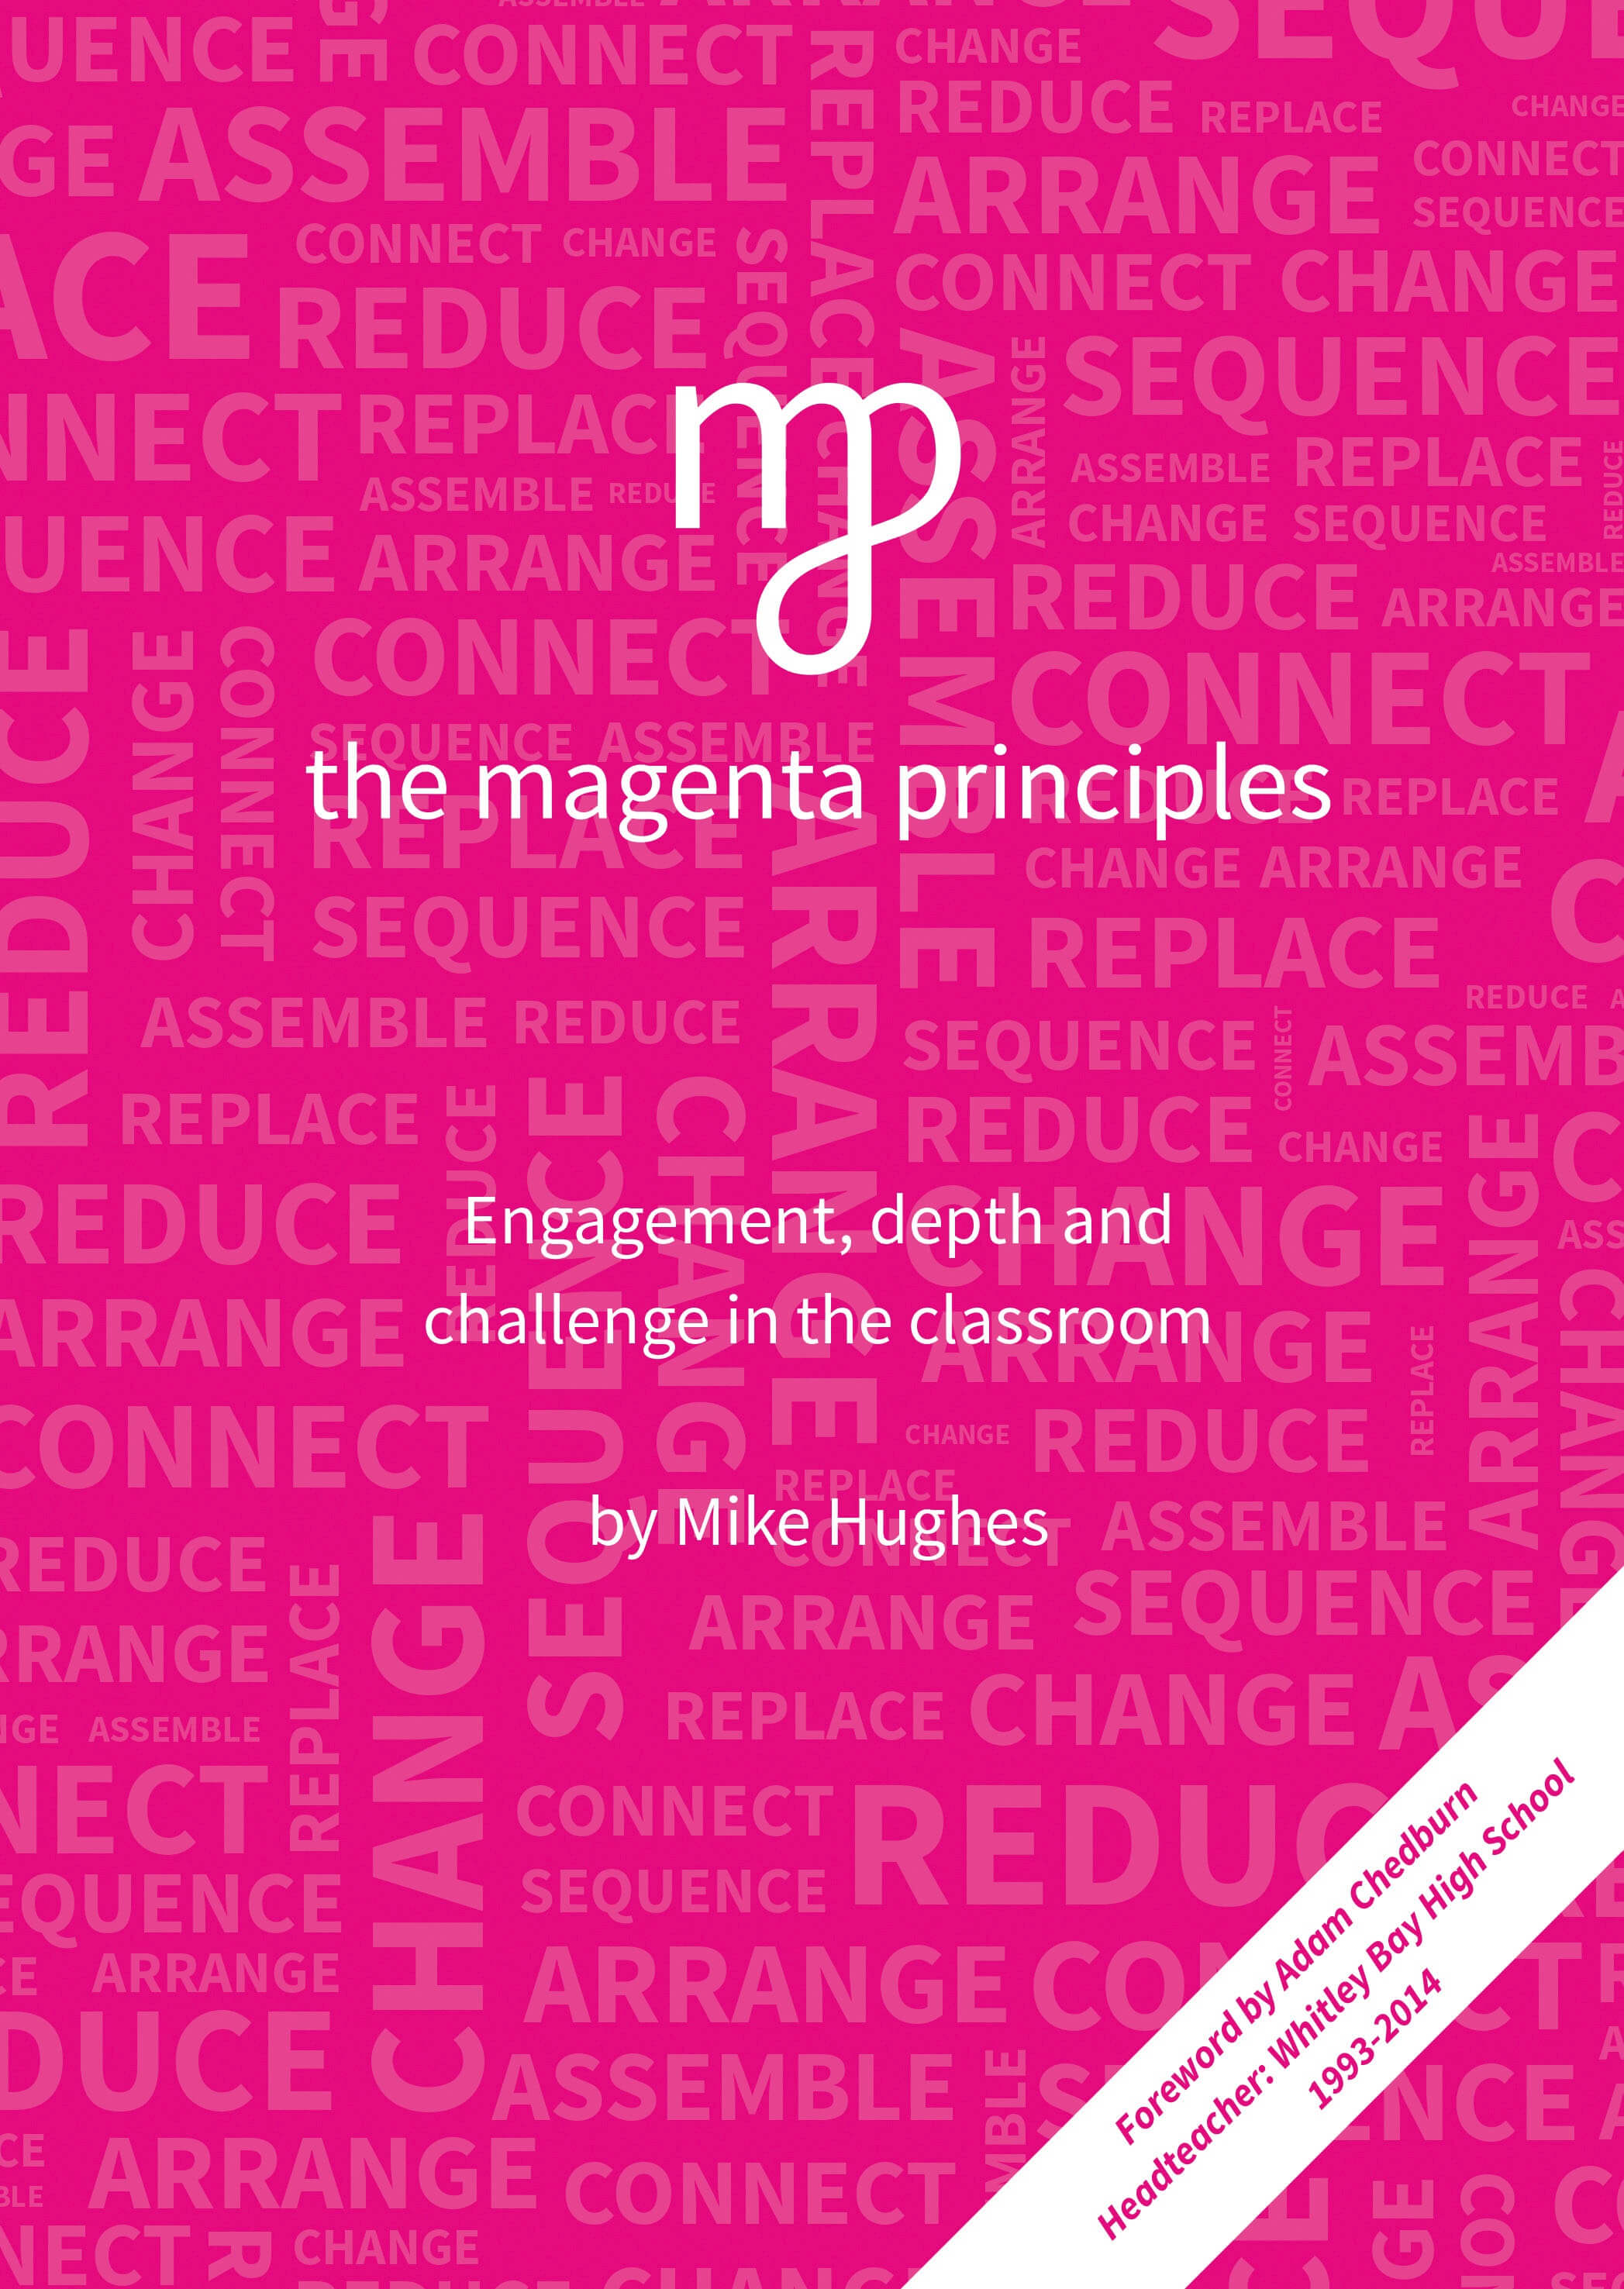 Mike Hughes ETS Education, Training, and Support - The Magenta Principles